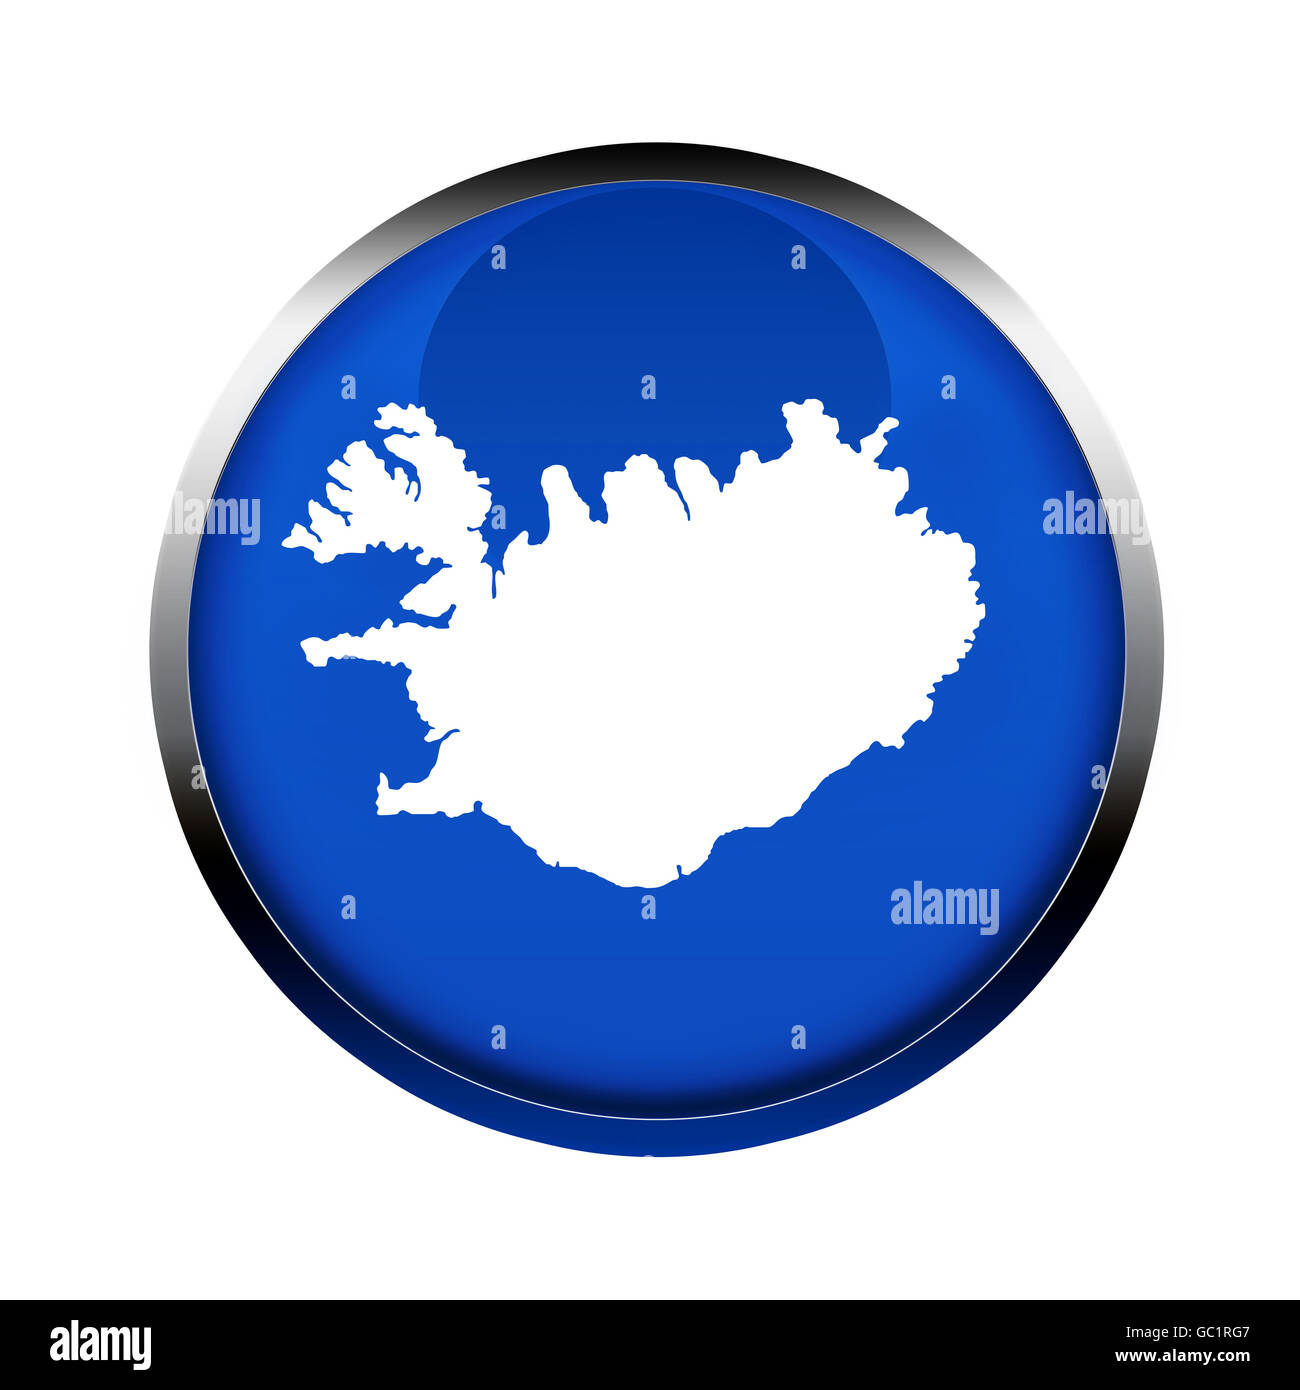 Iceland map button in the colors of the European Union. - Stock Image